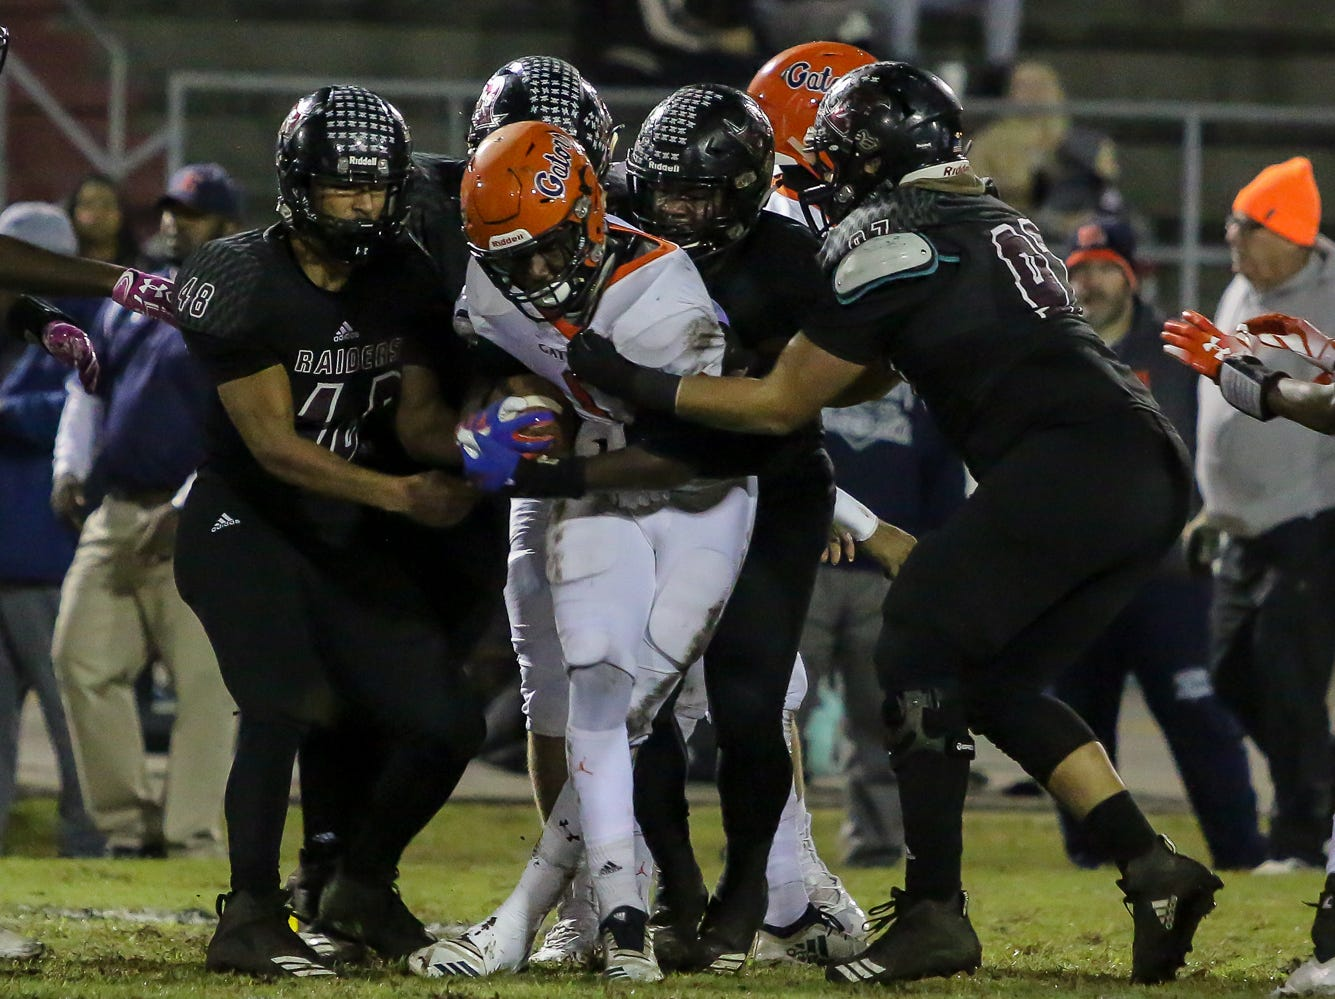 The Navarre defense wraps up Escambia's Frank Peasent (1) in the Region 1-6A Semifinal game at Navarre High School on Friday, November 16, 2018.